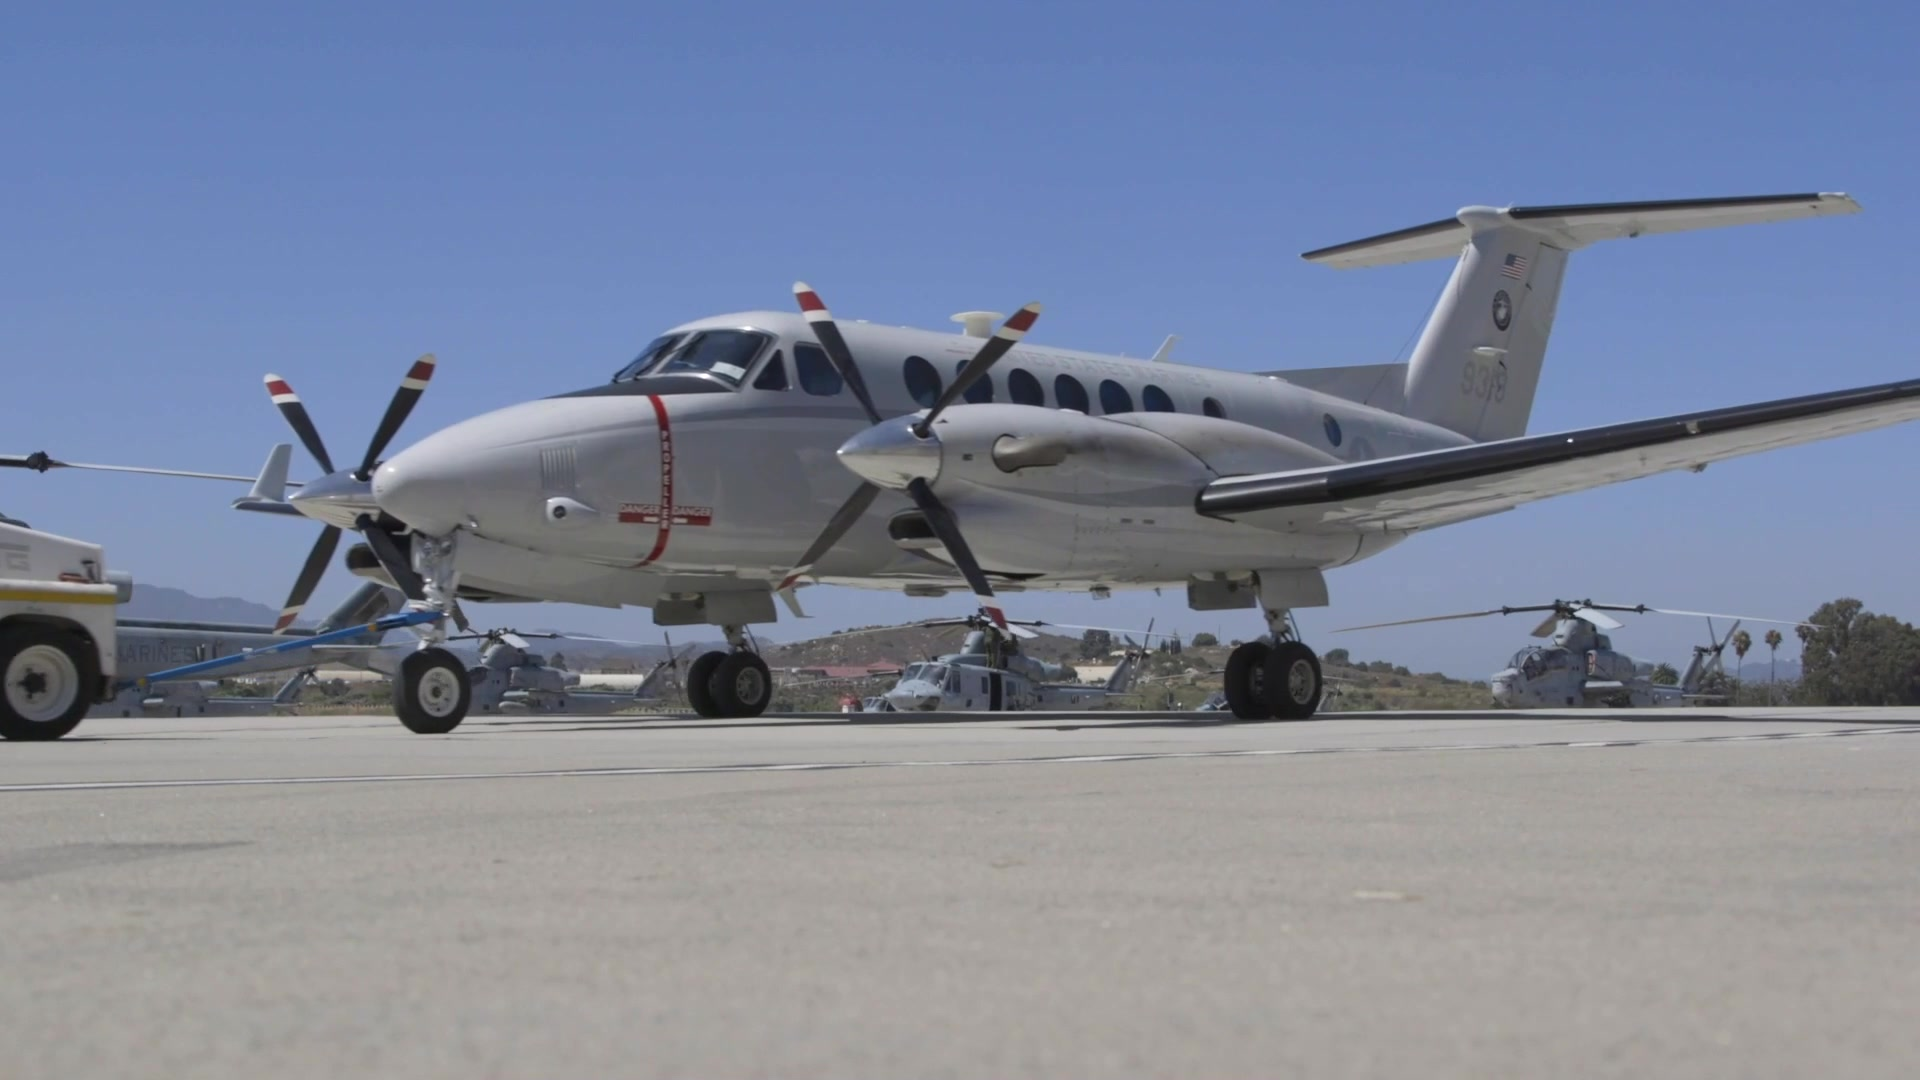 A U.S. Marine Corps UC-12W Huron with Headquarters and Headquarters Squadron, Marine Corps Air Station Camp Pendleton, lands at MCAS Camp Pendleton, California, July 31, 2020. This is the first time in the unit's history H&HS has operated aircraft as a flying squadron. The UC-12W gives H&HS operational support airlift capabilities, and allows them to to move critical equipment and personnel to any location in the U.S. in a timely and cost effective manner in support of other Marine Corps units. (U.S. Marine Corps video by Cpl. Stephen Beard)